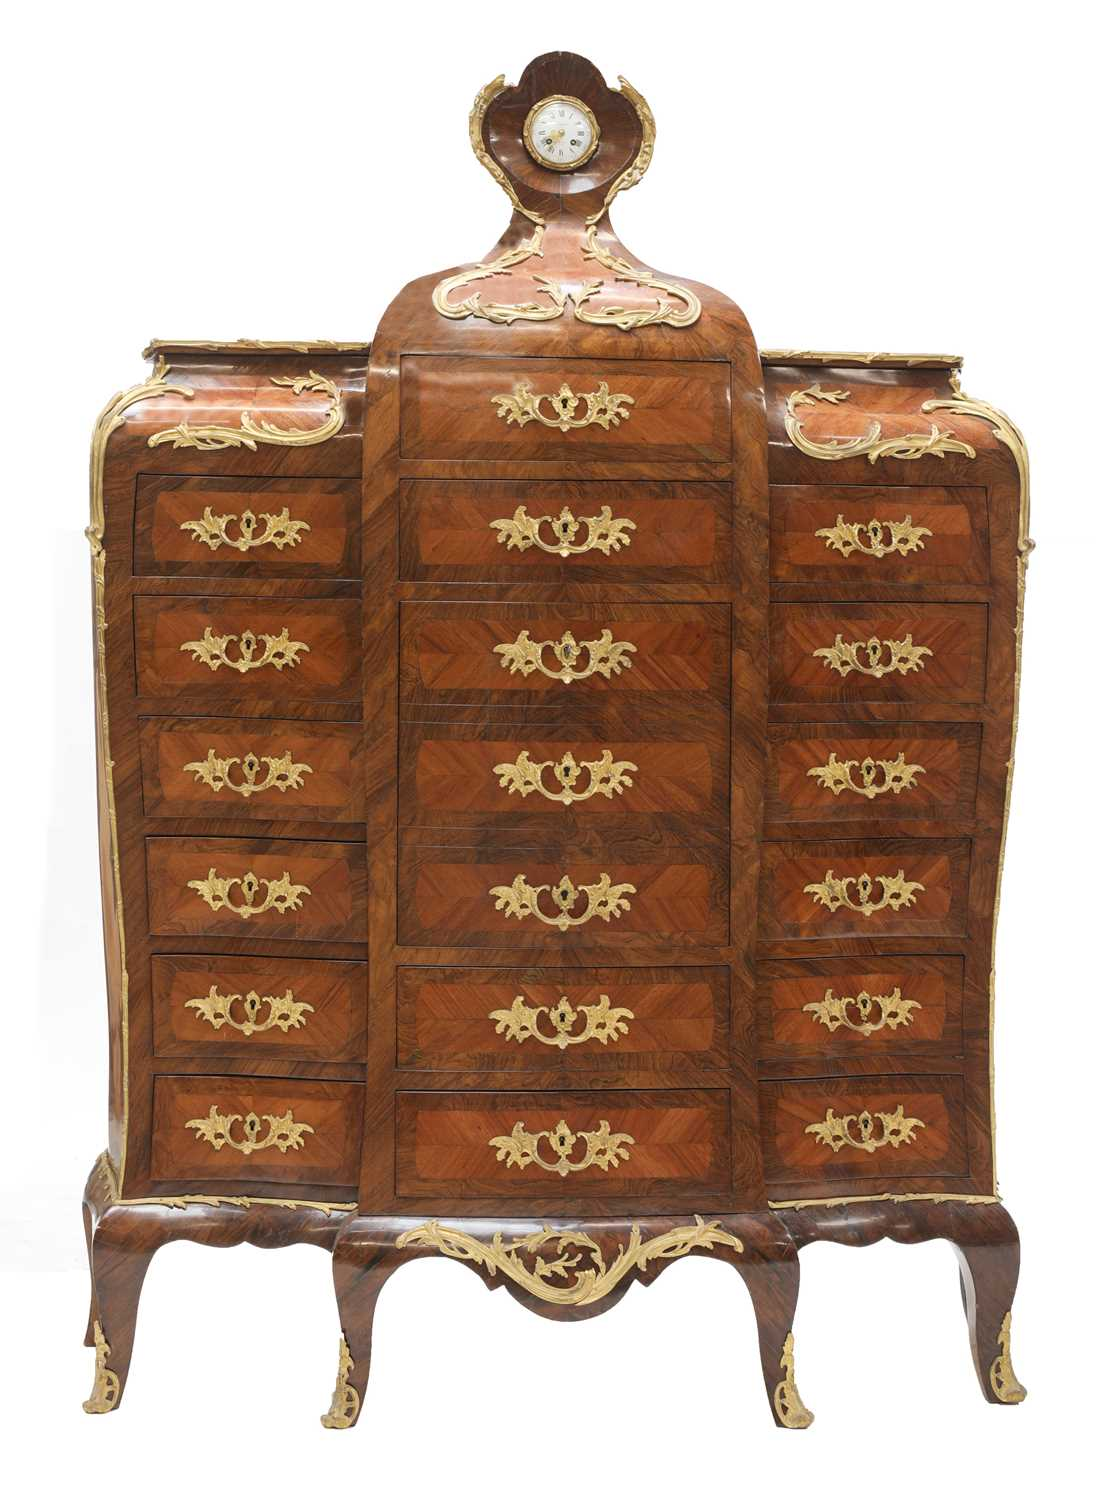 Lot 12 - An extraordinary and fine Louis XV-style rosewood and kingwood secretaire en chiffonier